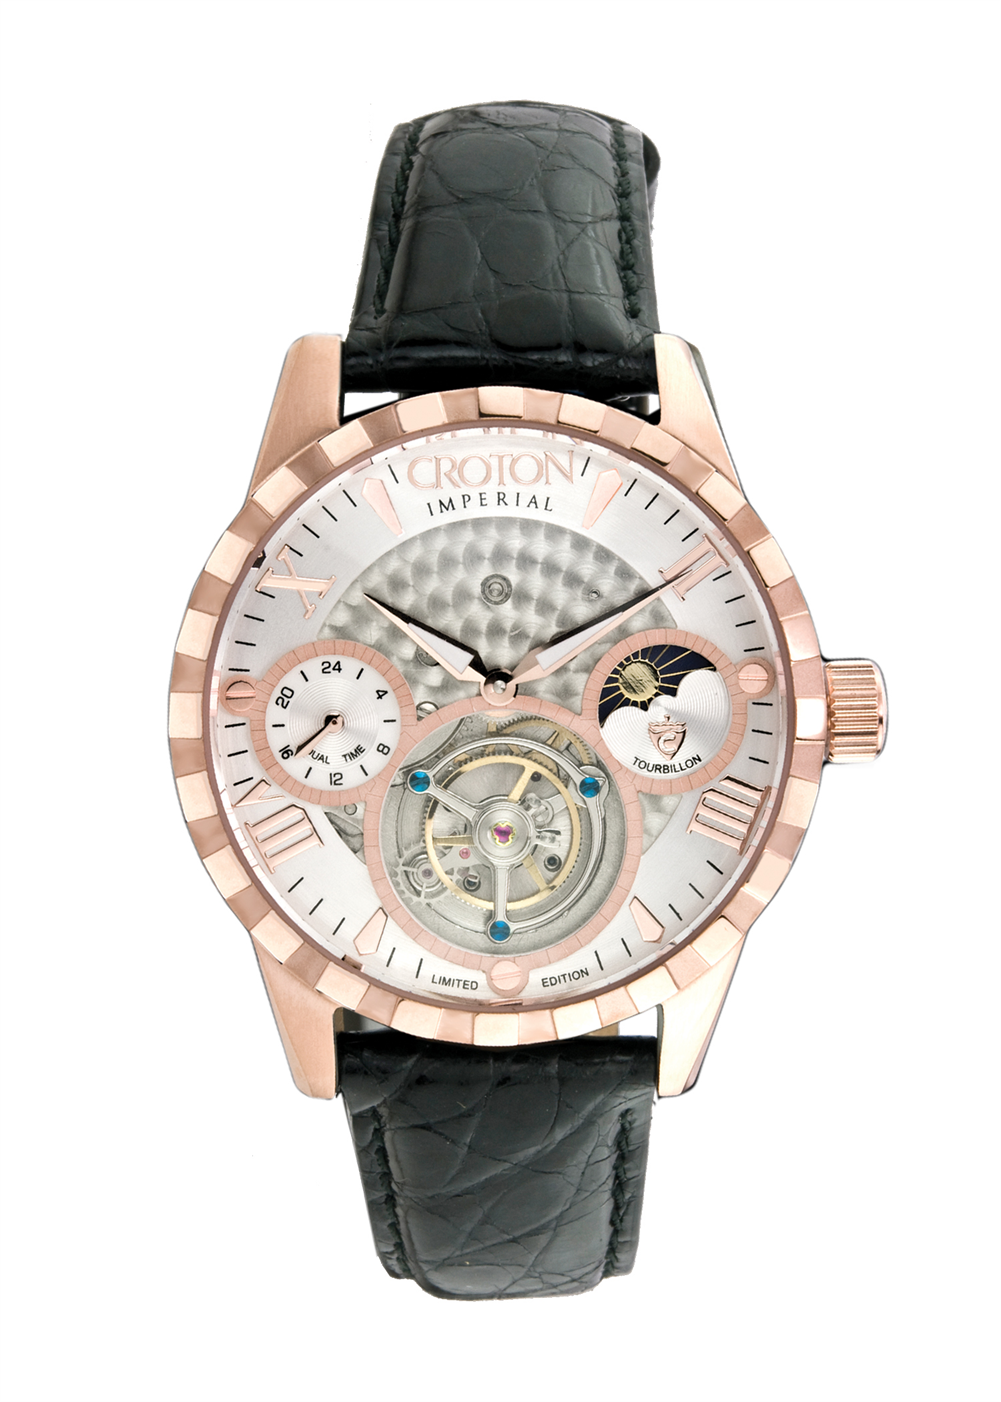 watches fine jewelry for r tics com where luxury is affordable men s croton watch